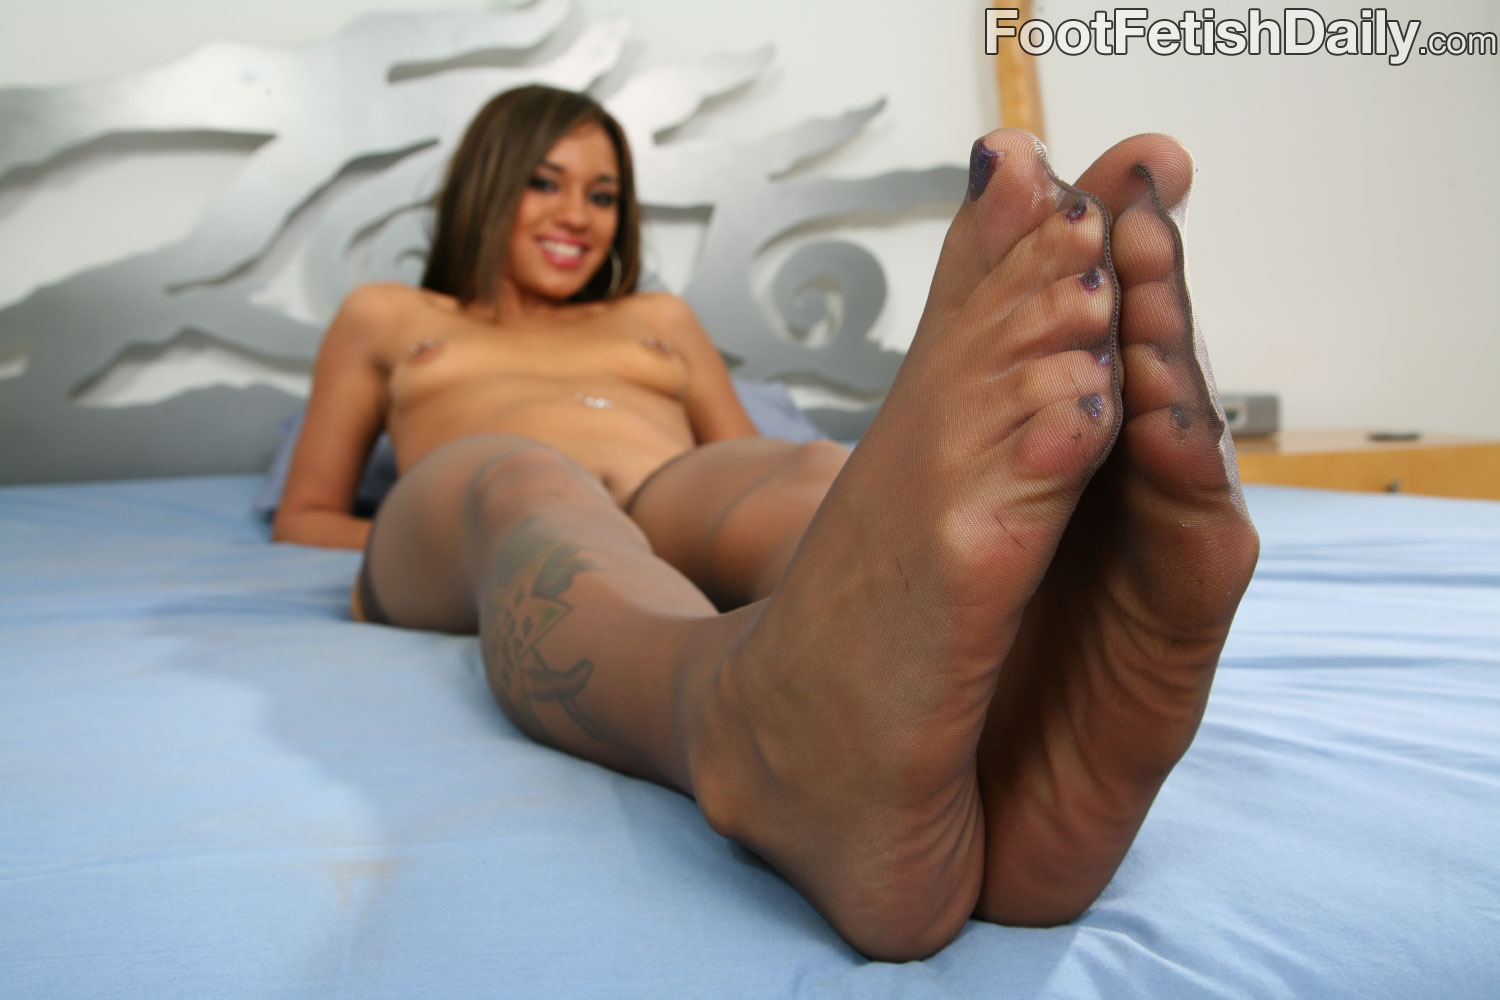 tease foot fetish alicia